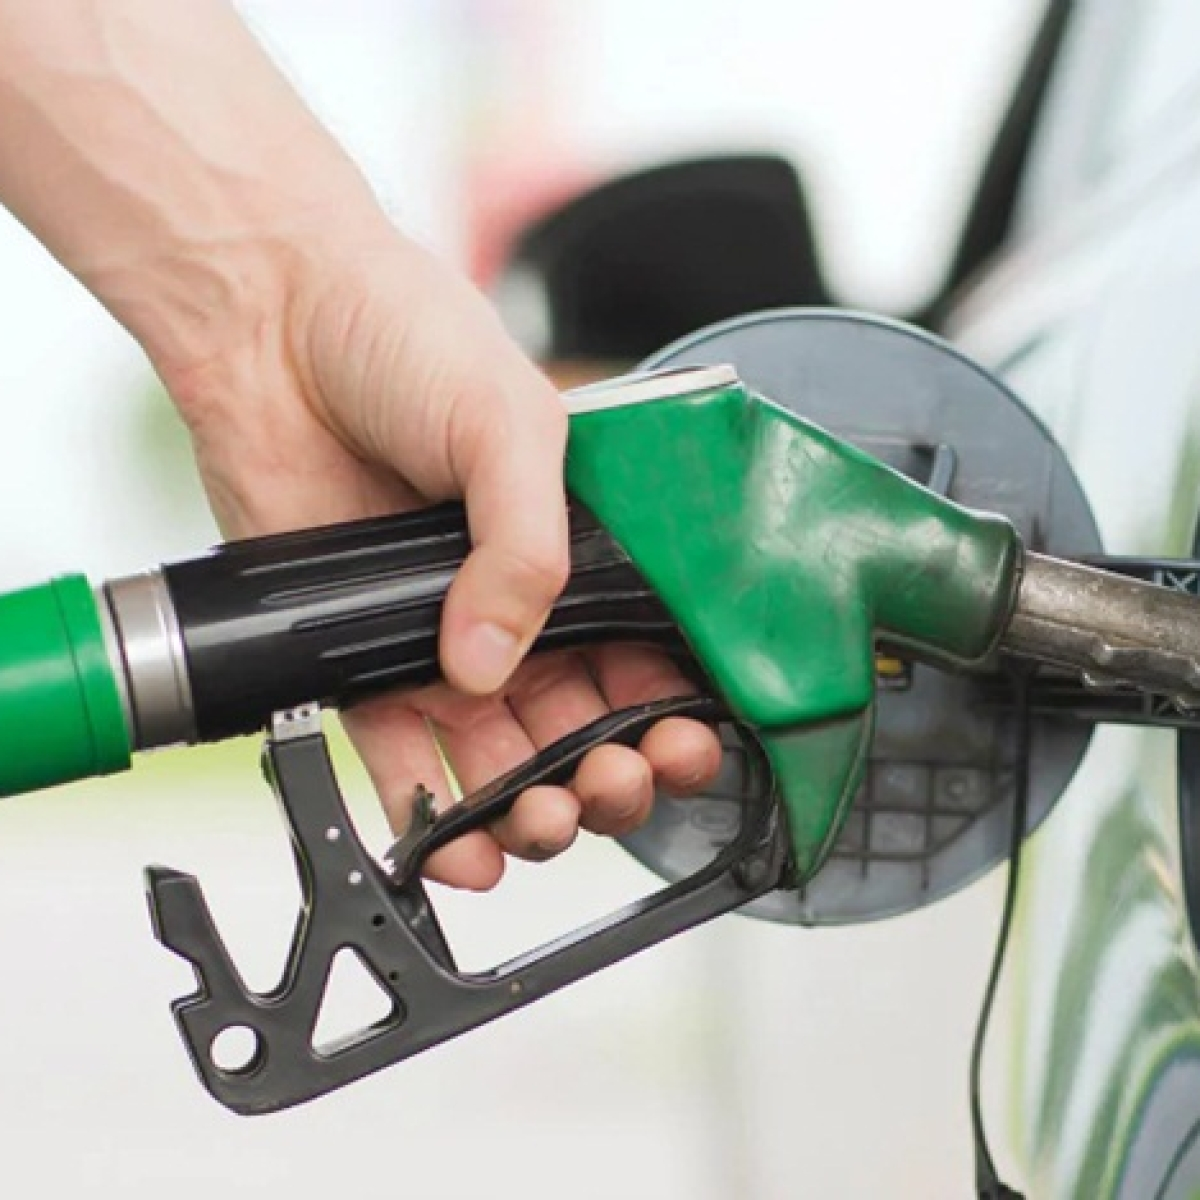 Petrol, diesel prices drop further as crude rates plunge amid coronavirus outbreak